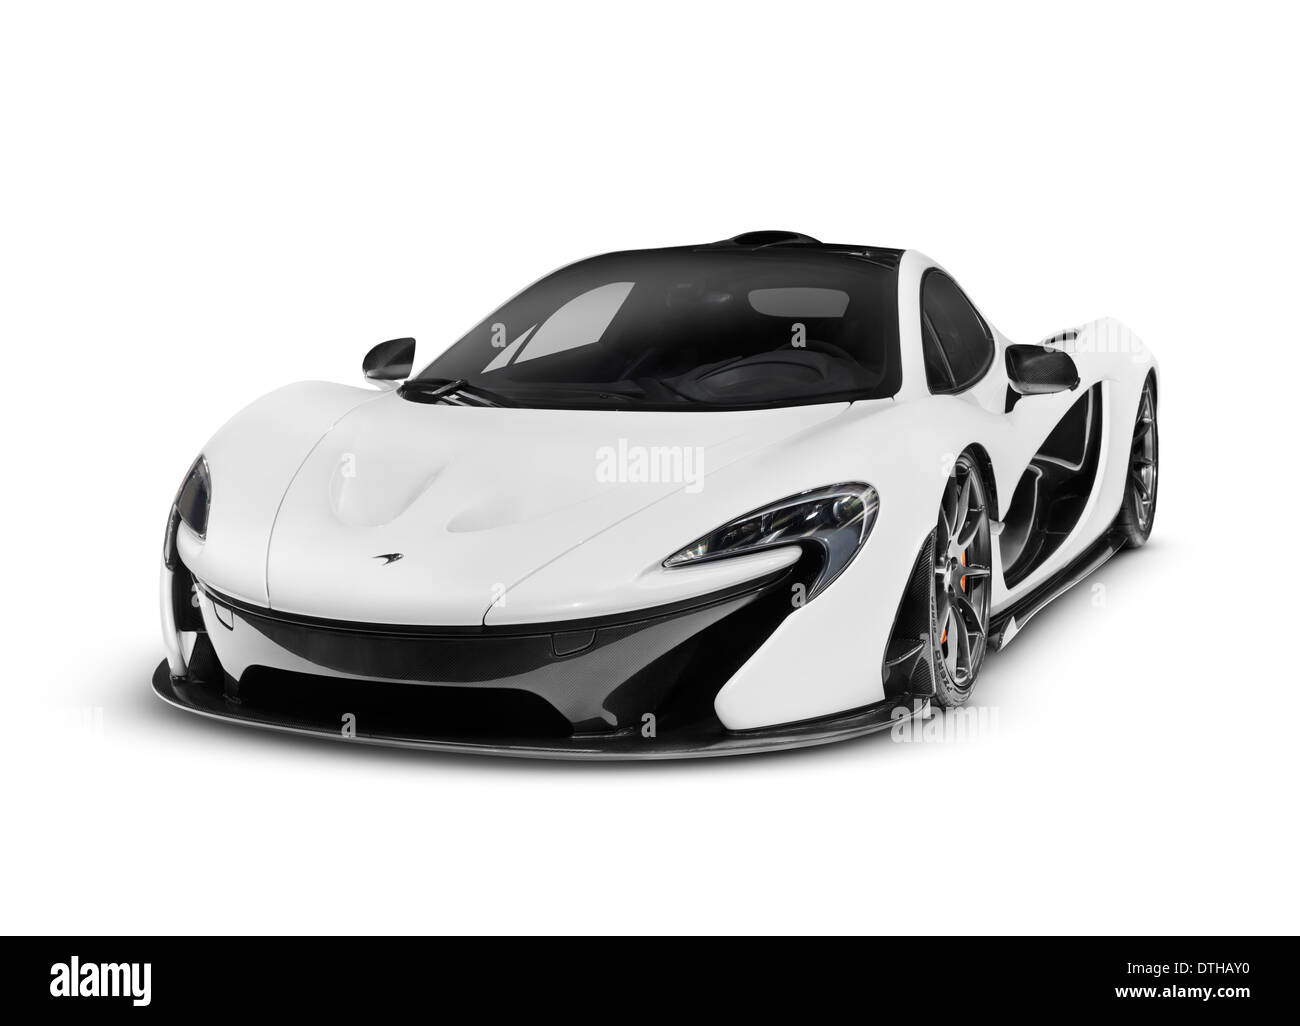 White Sports Car High Resolution Stock Photography And Images Alamy